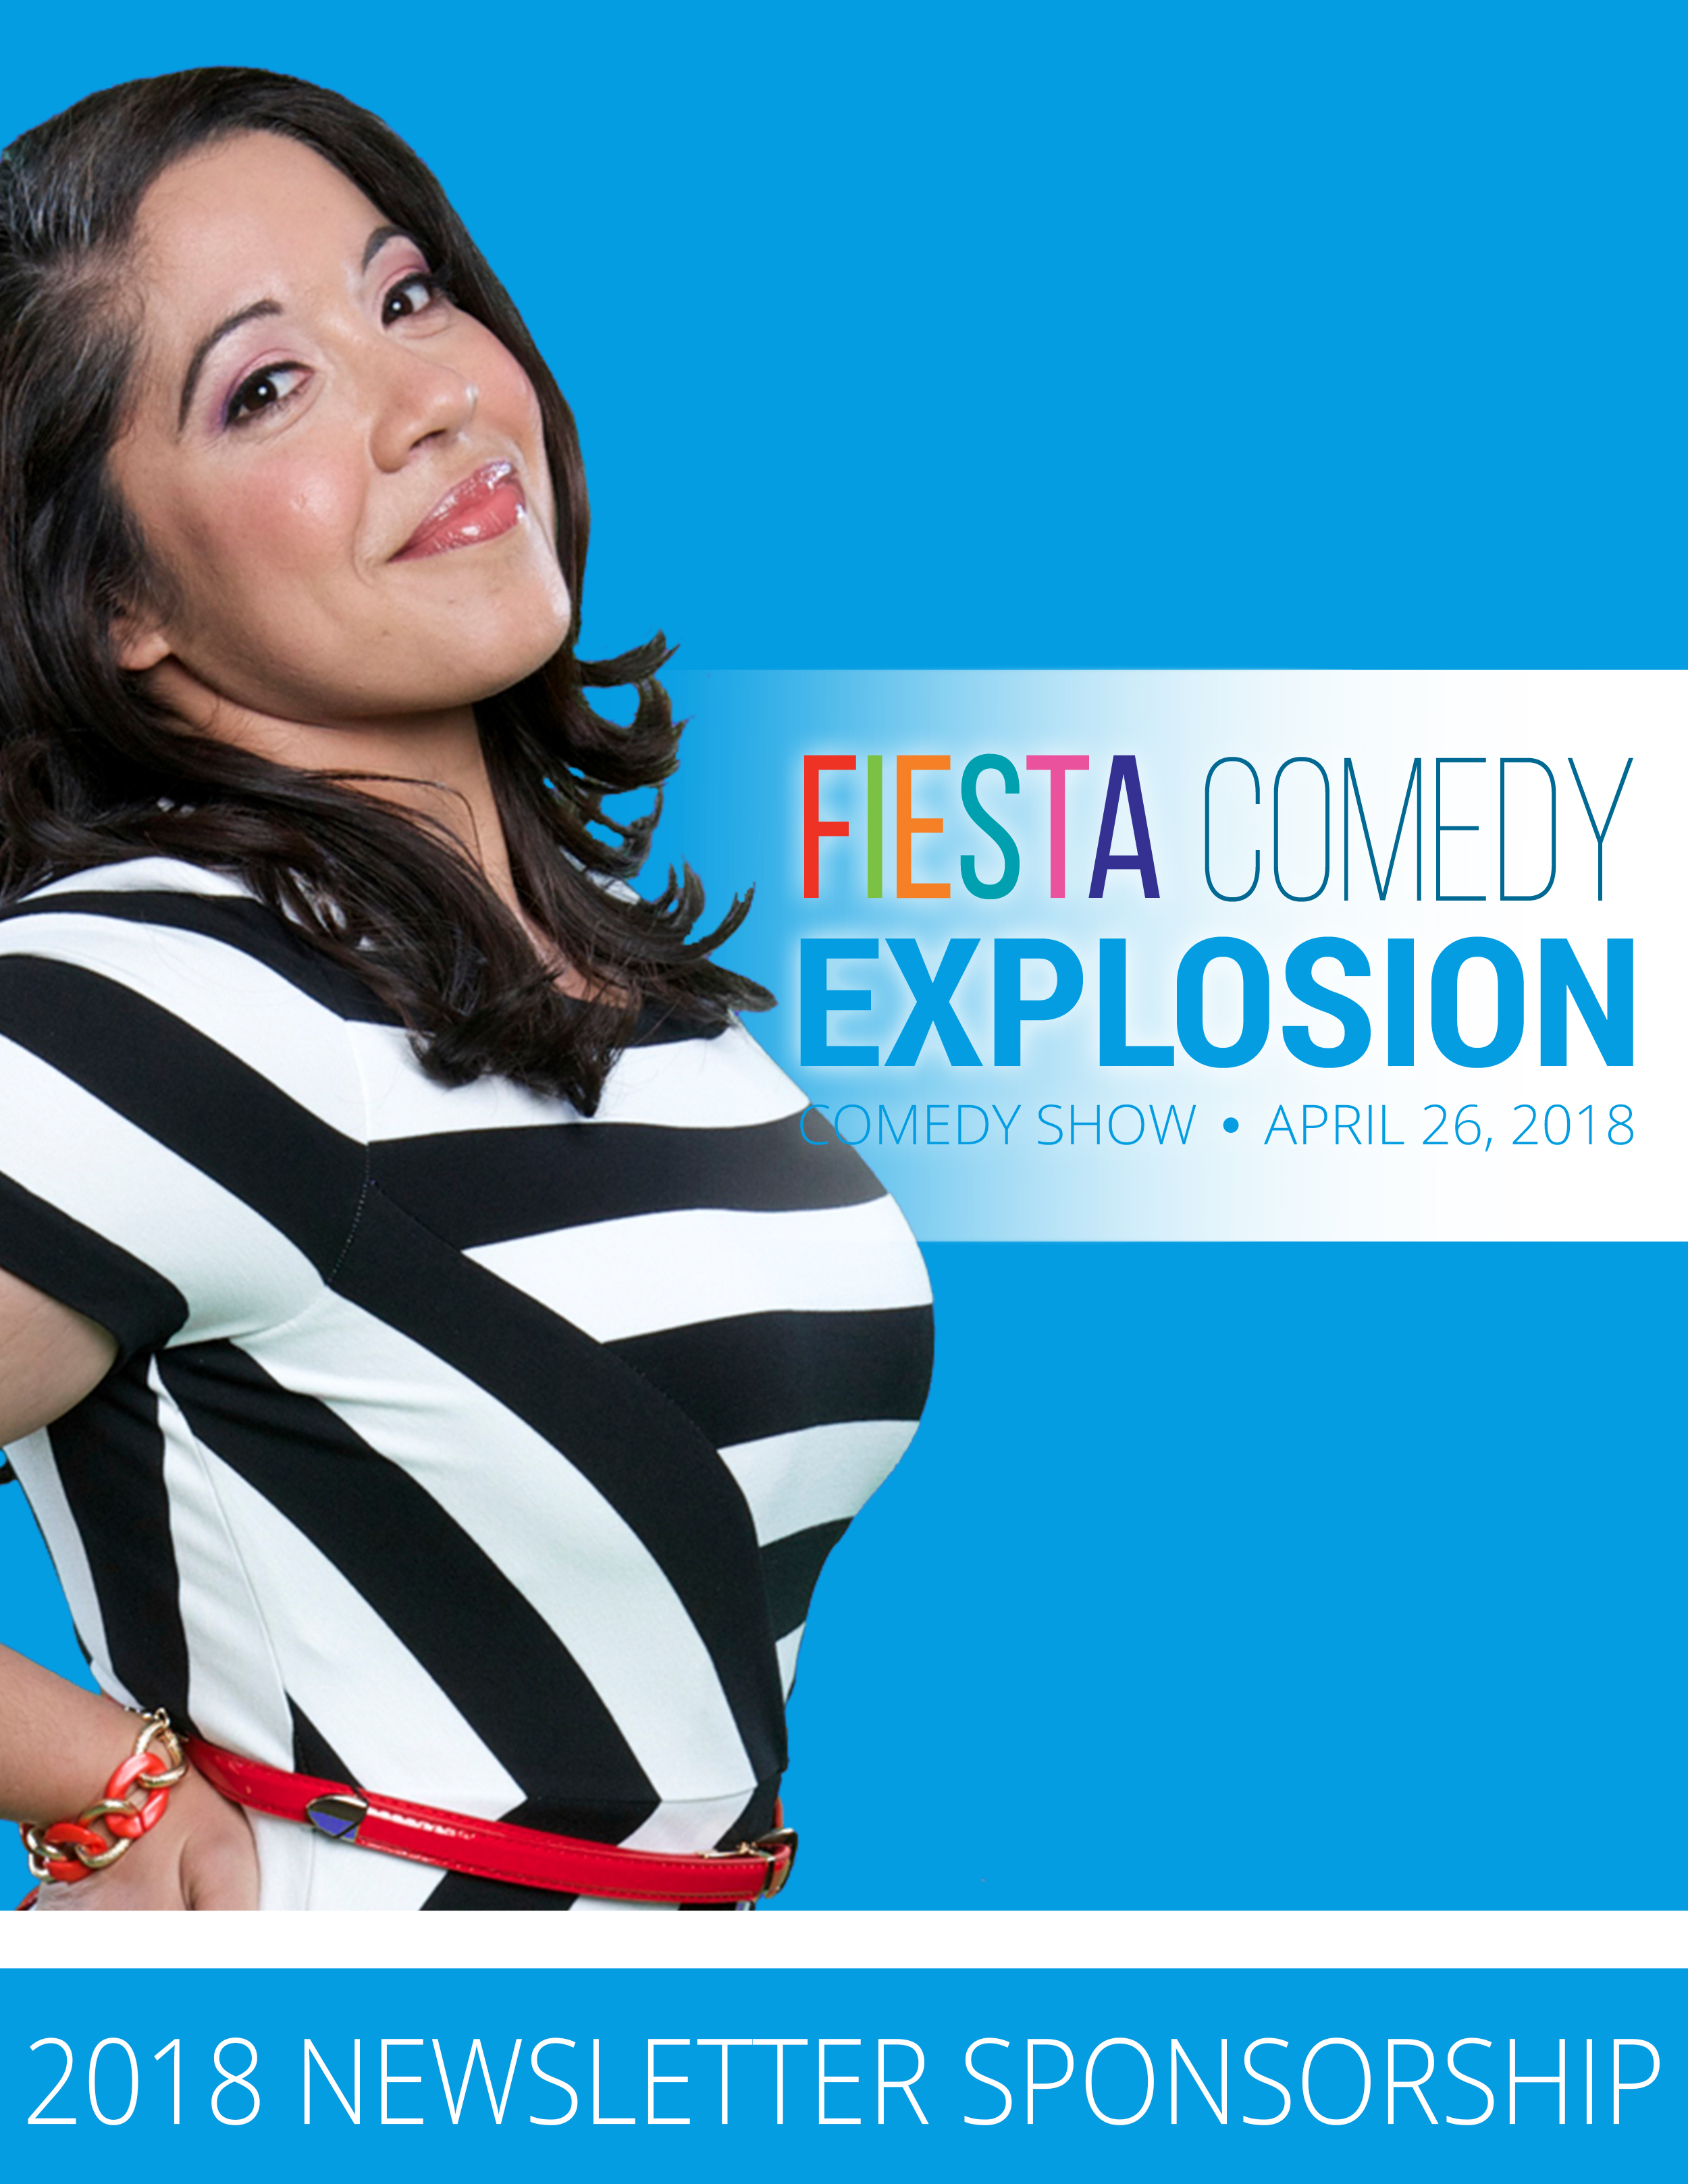 Newsletter Sponsorship | Fiesta Comedy Explosion 2018 Sponsorship Package | Fiesta San Antonio | Official Priest Holmes Foundation Website | Priest Holmes Son | Priest Holmes Girlfriend | Priest Holmes Wife | Priest Holmes Engaged | Priest Holmes Family | Priest Holmes is Engaged